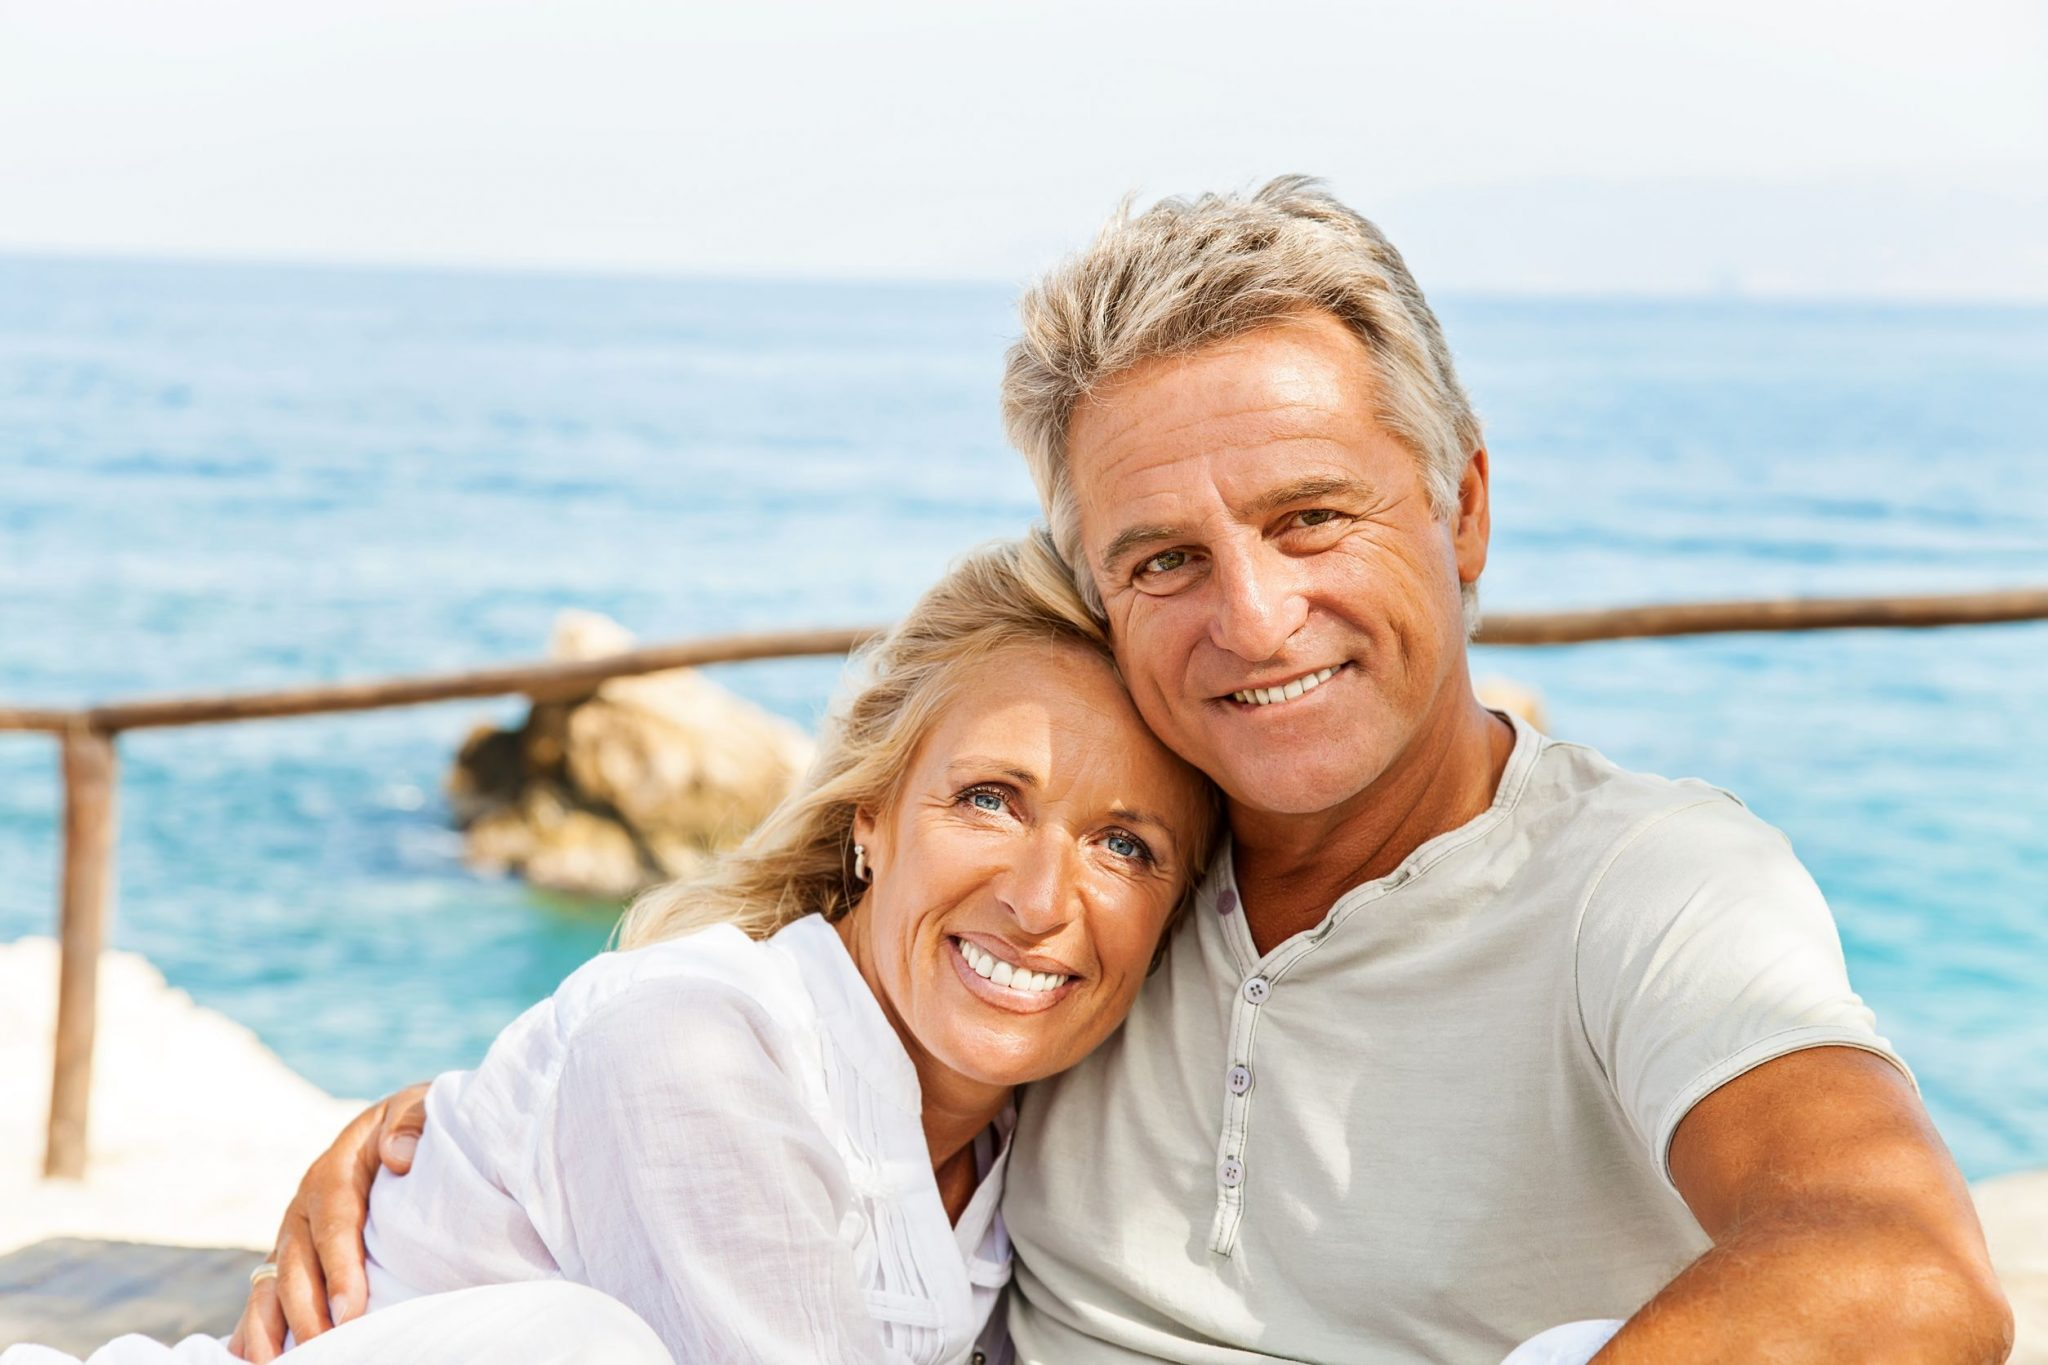 You can learn if your husband has low testosterone by identifying these warning signs.